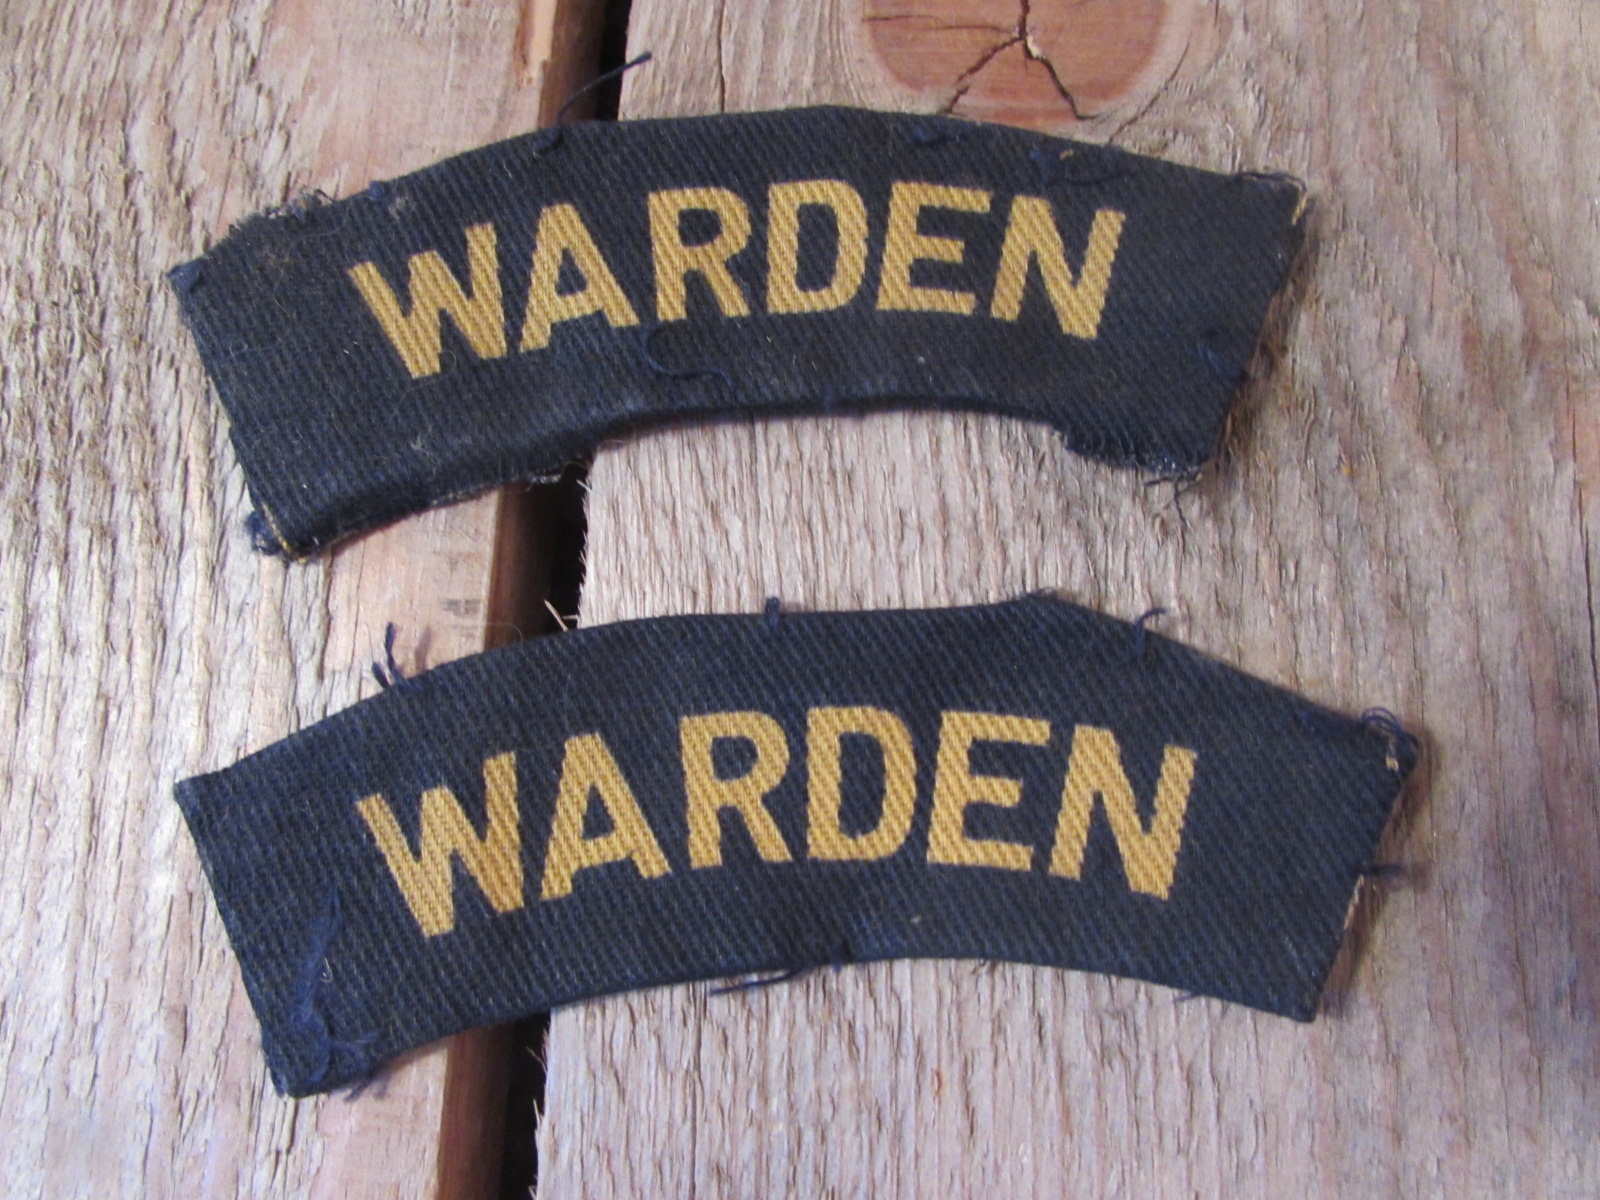 Pair of wartime warden shoulder titles (material)